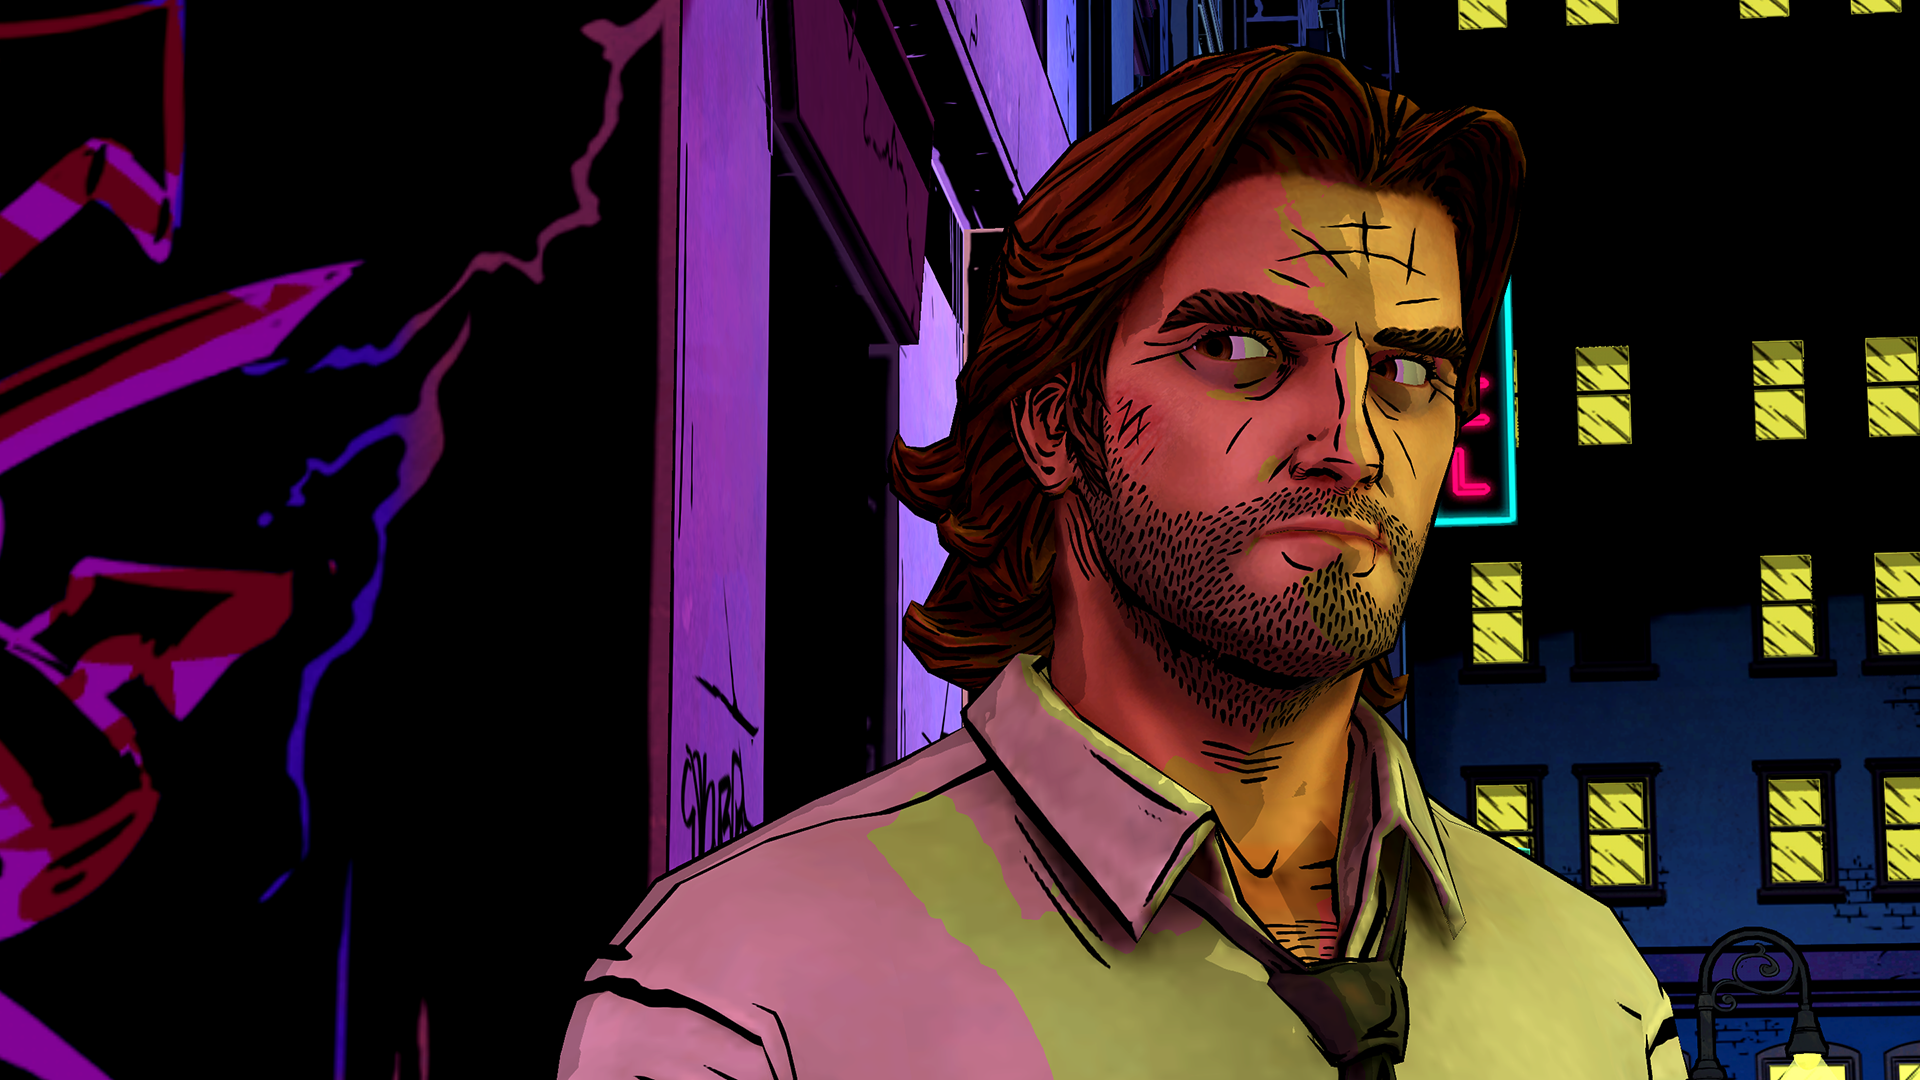 The Wolf Among Us Bigby Wolf The Wolf Among Us Future Games Episode